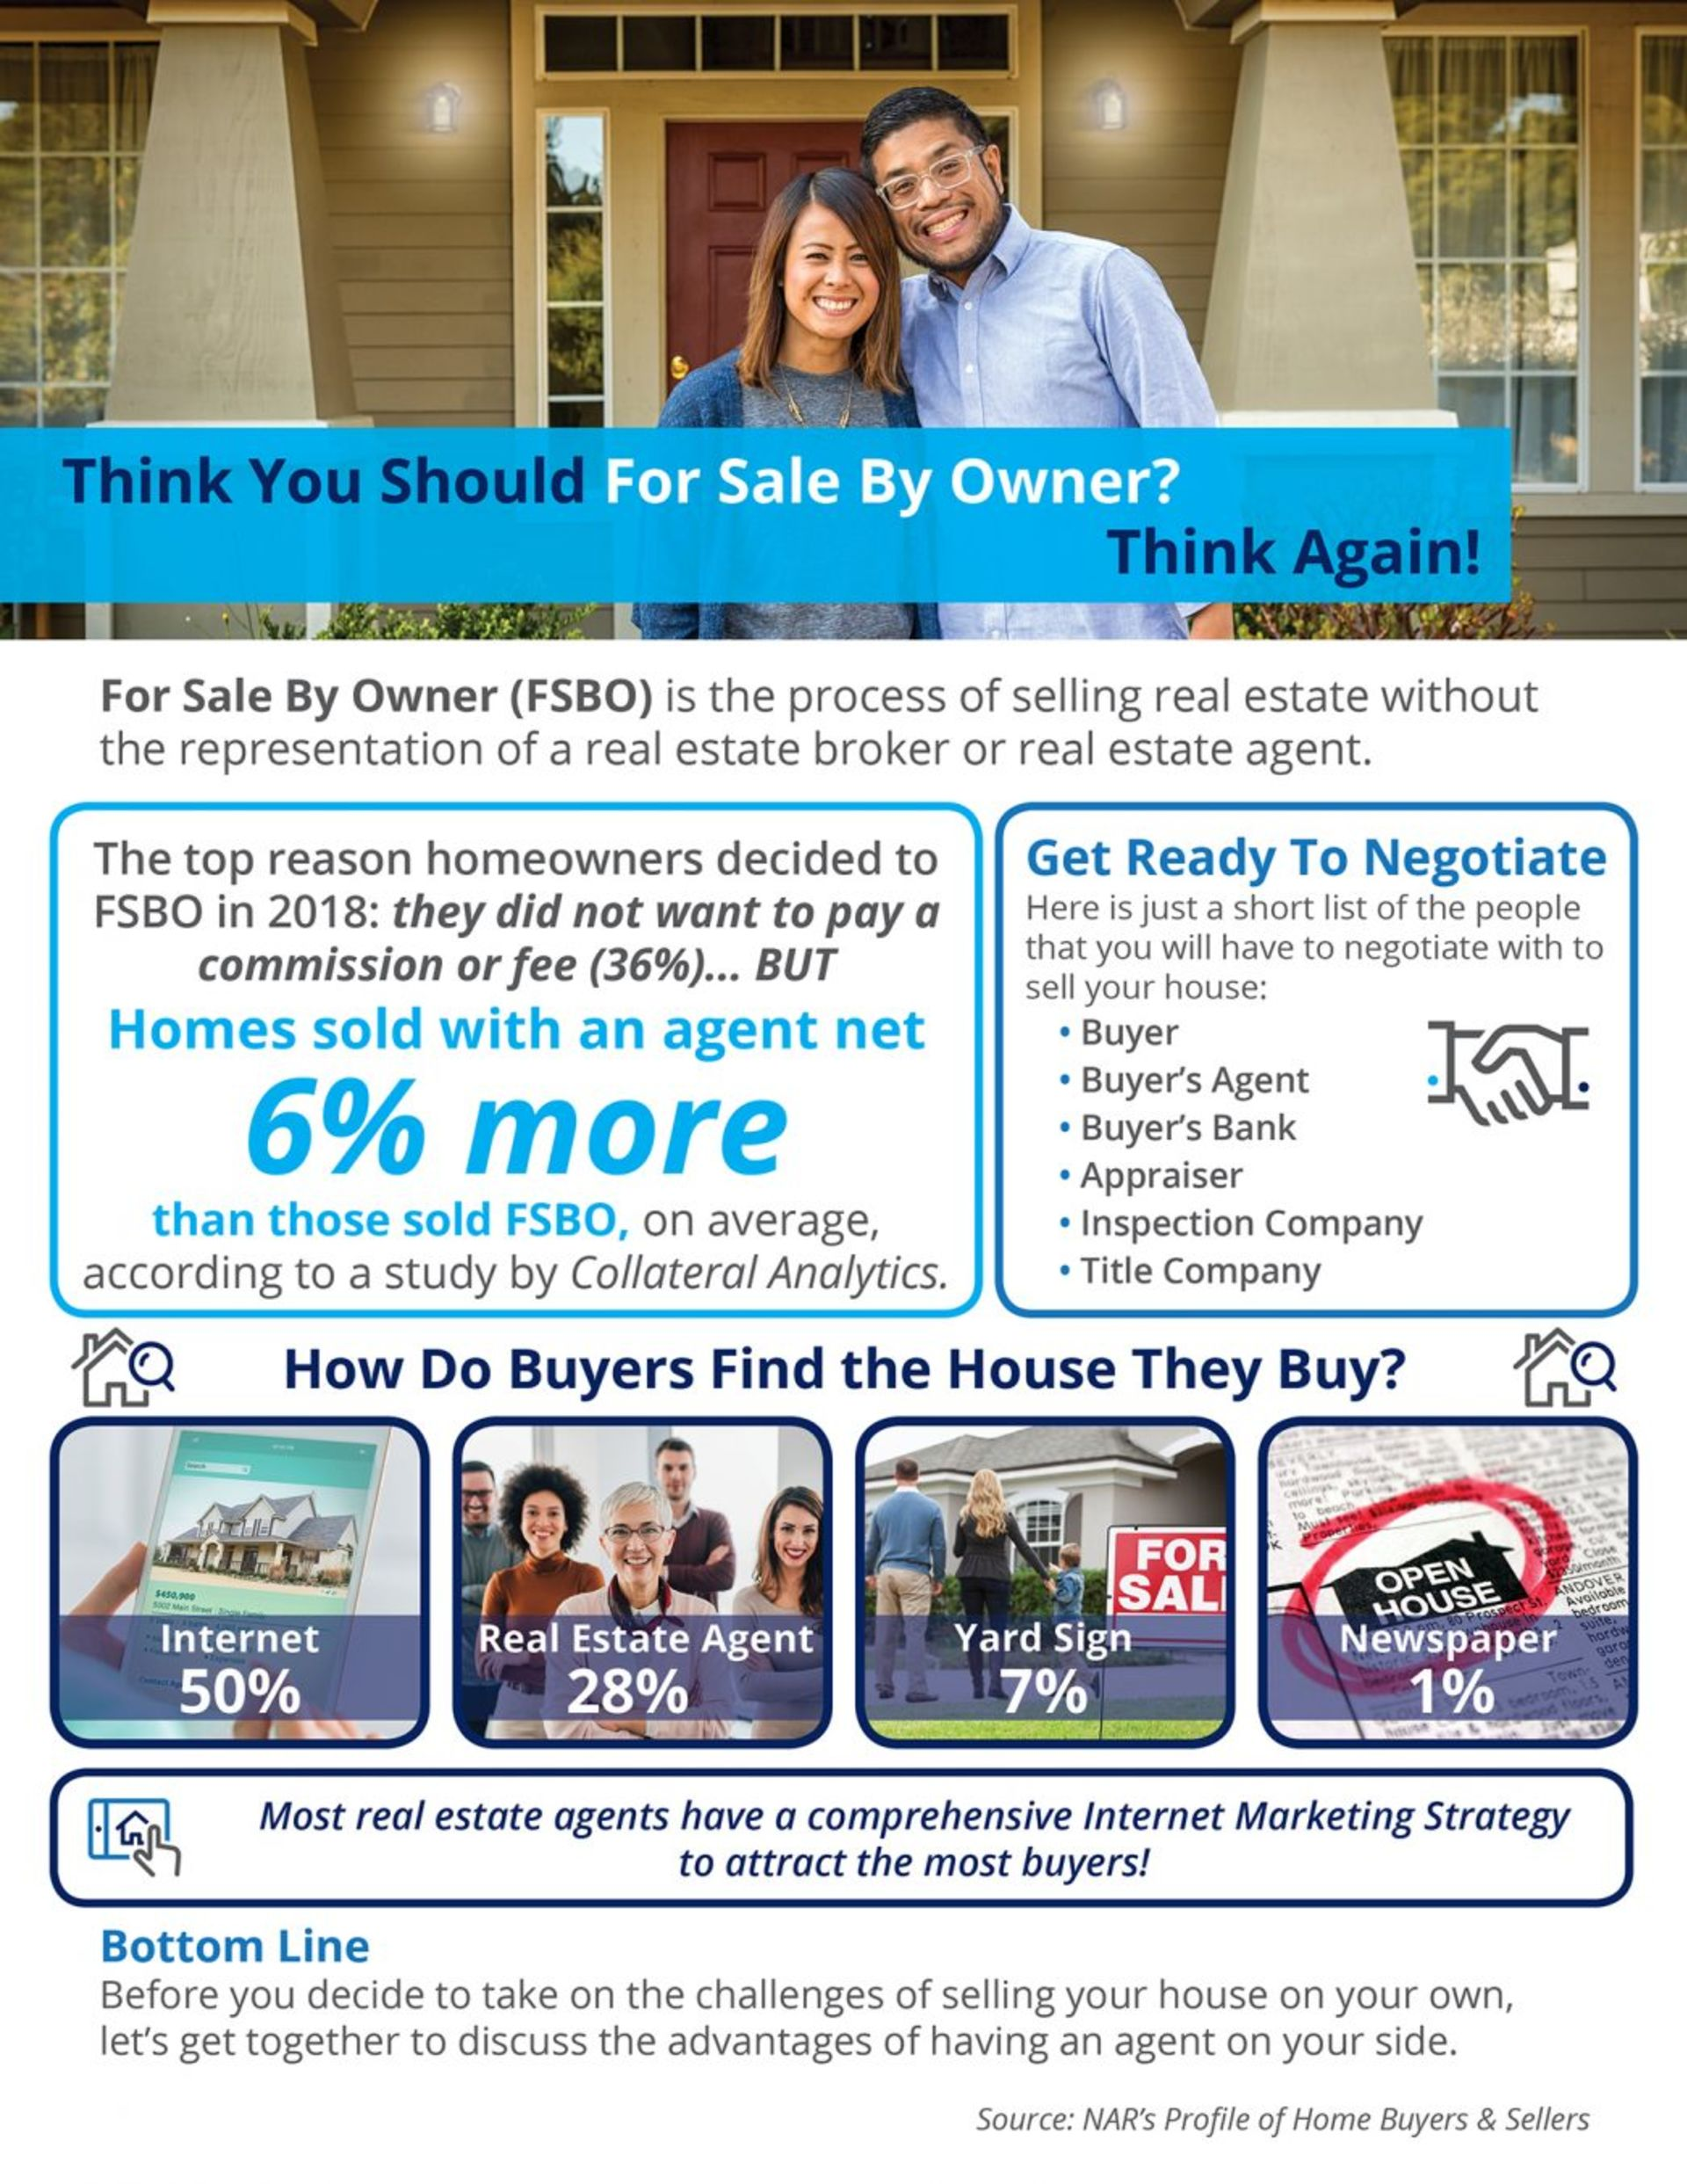 Think You Should For Sale By Owner? Think Again!